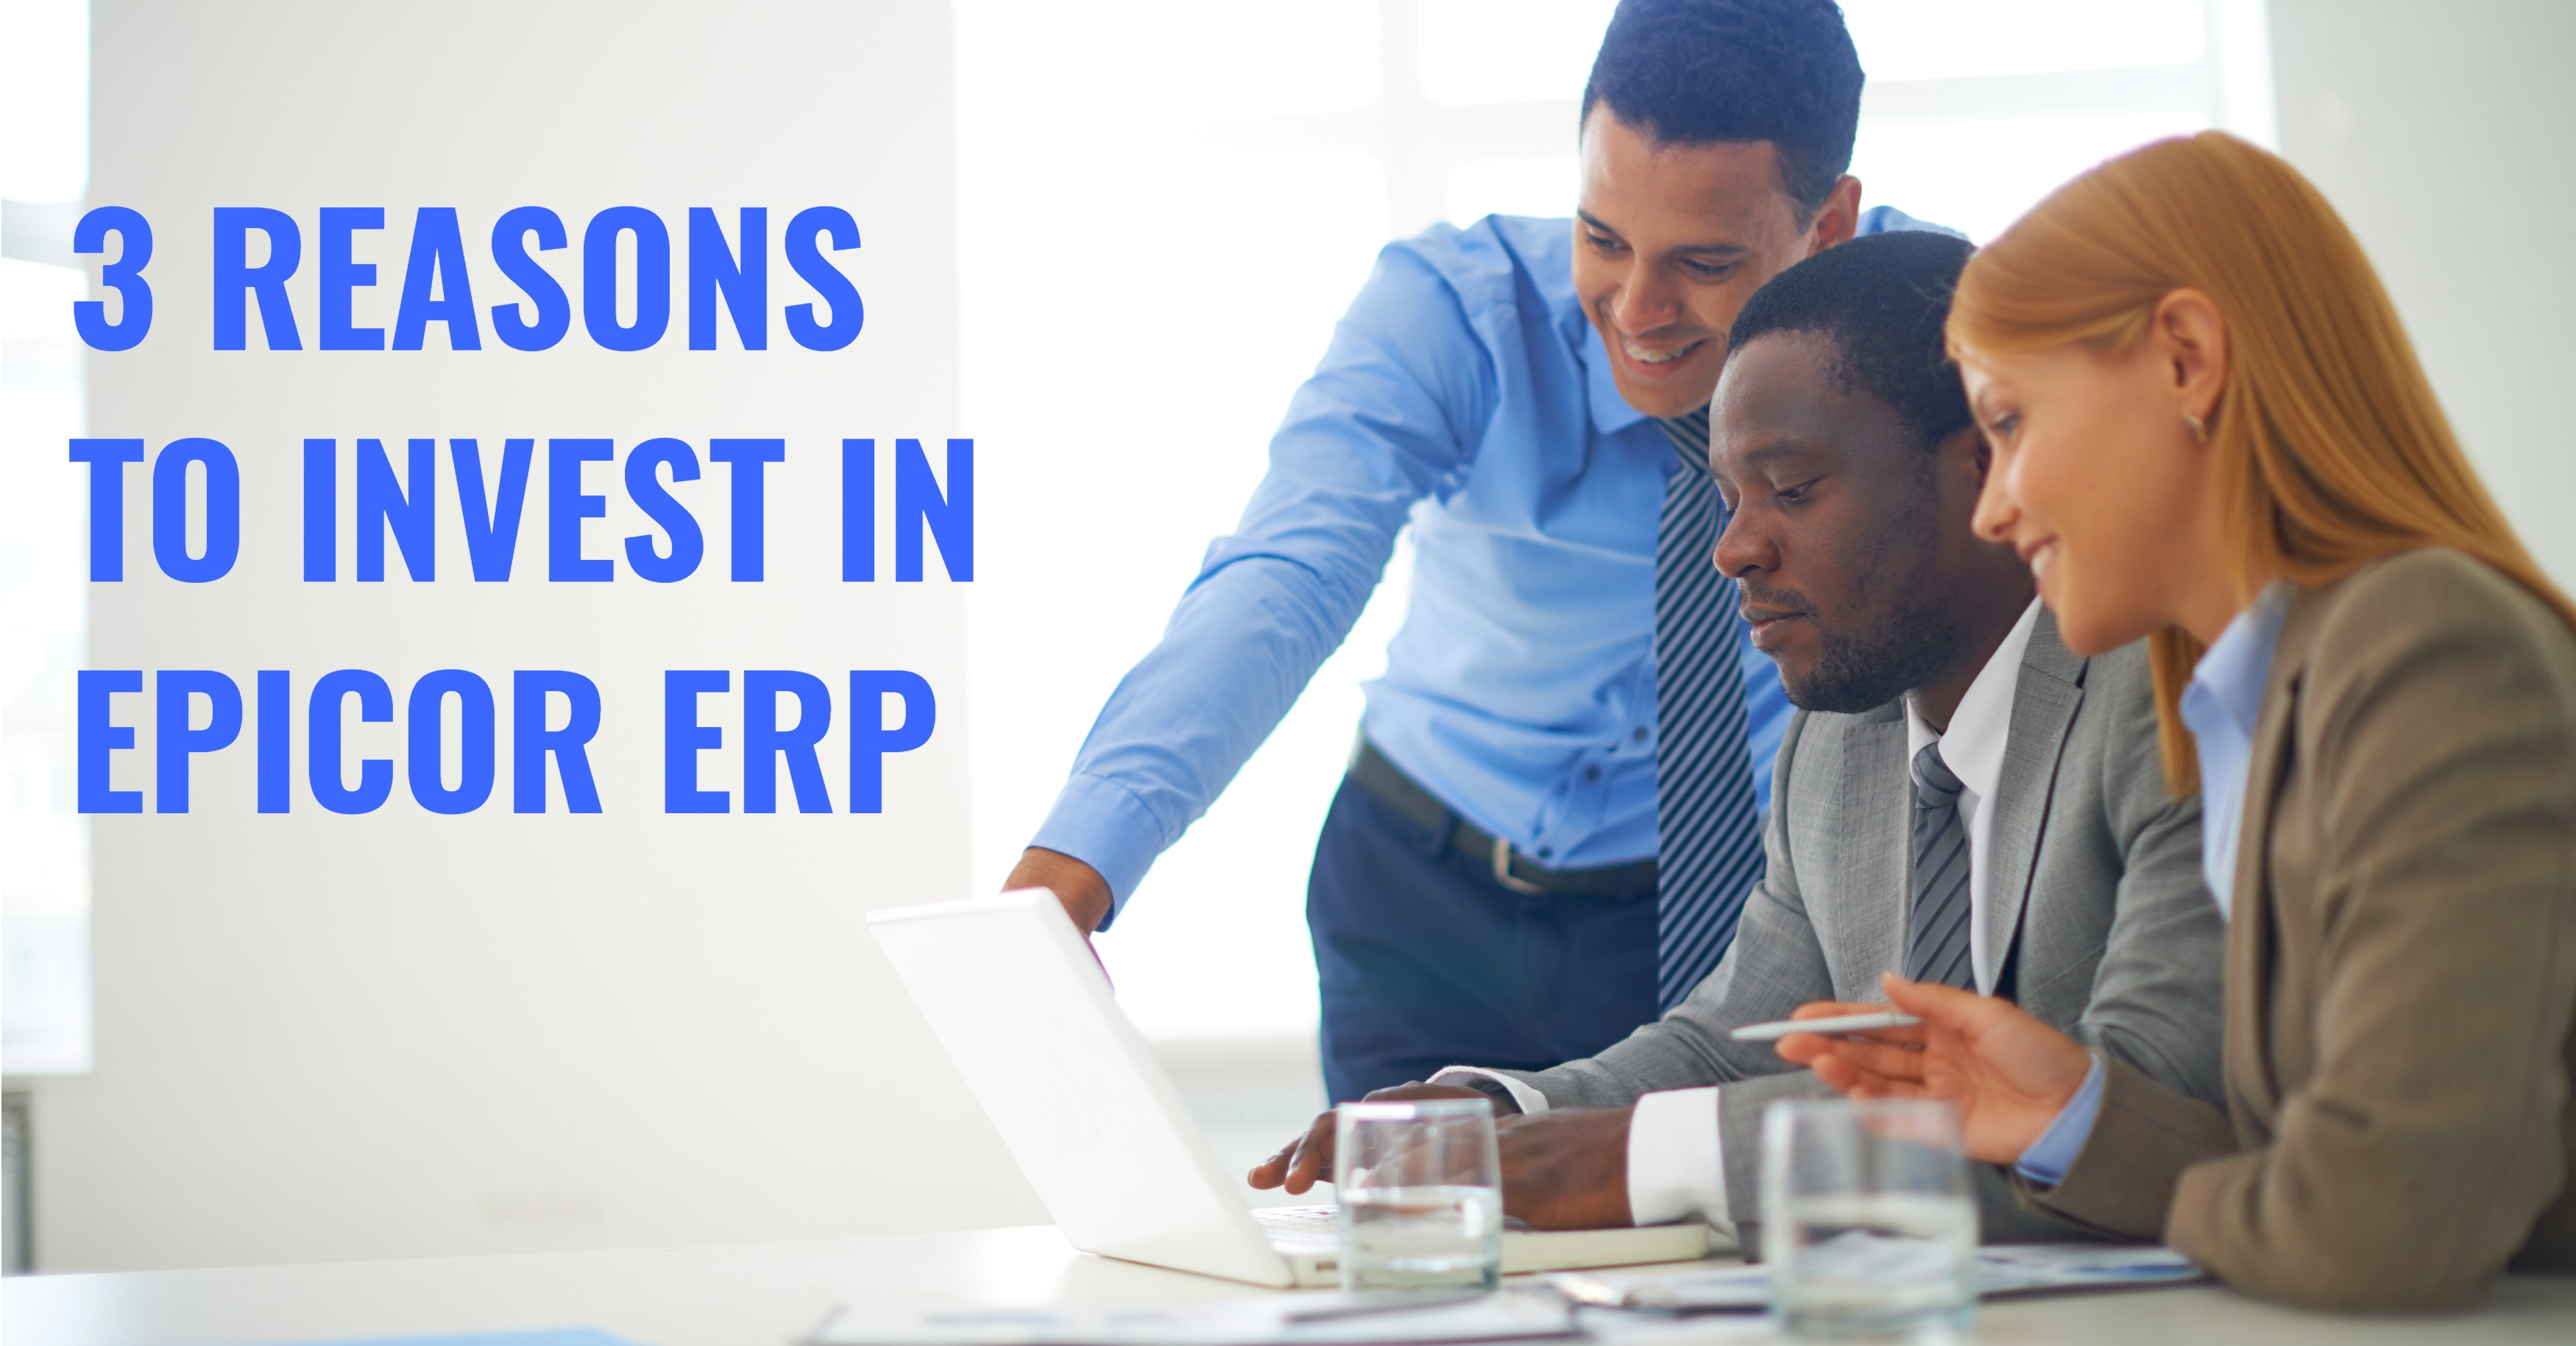 3 Reasons to Invest in Epicor ERP